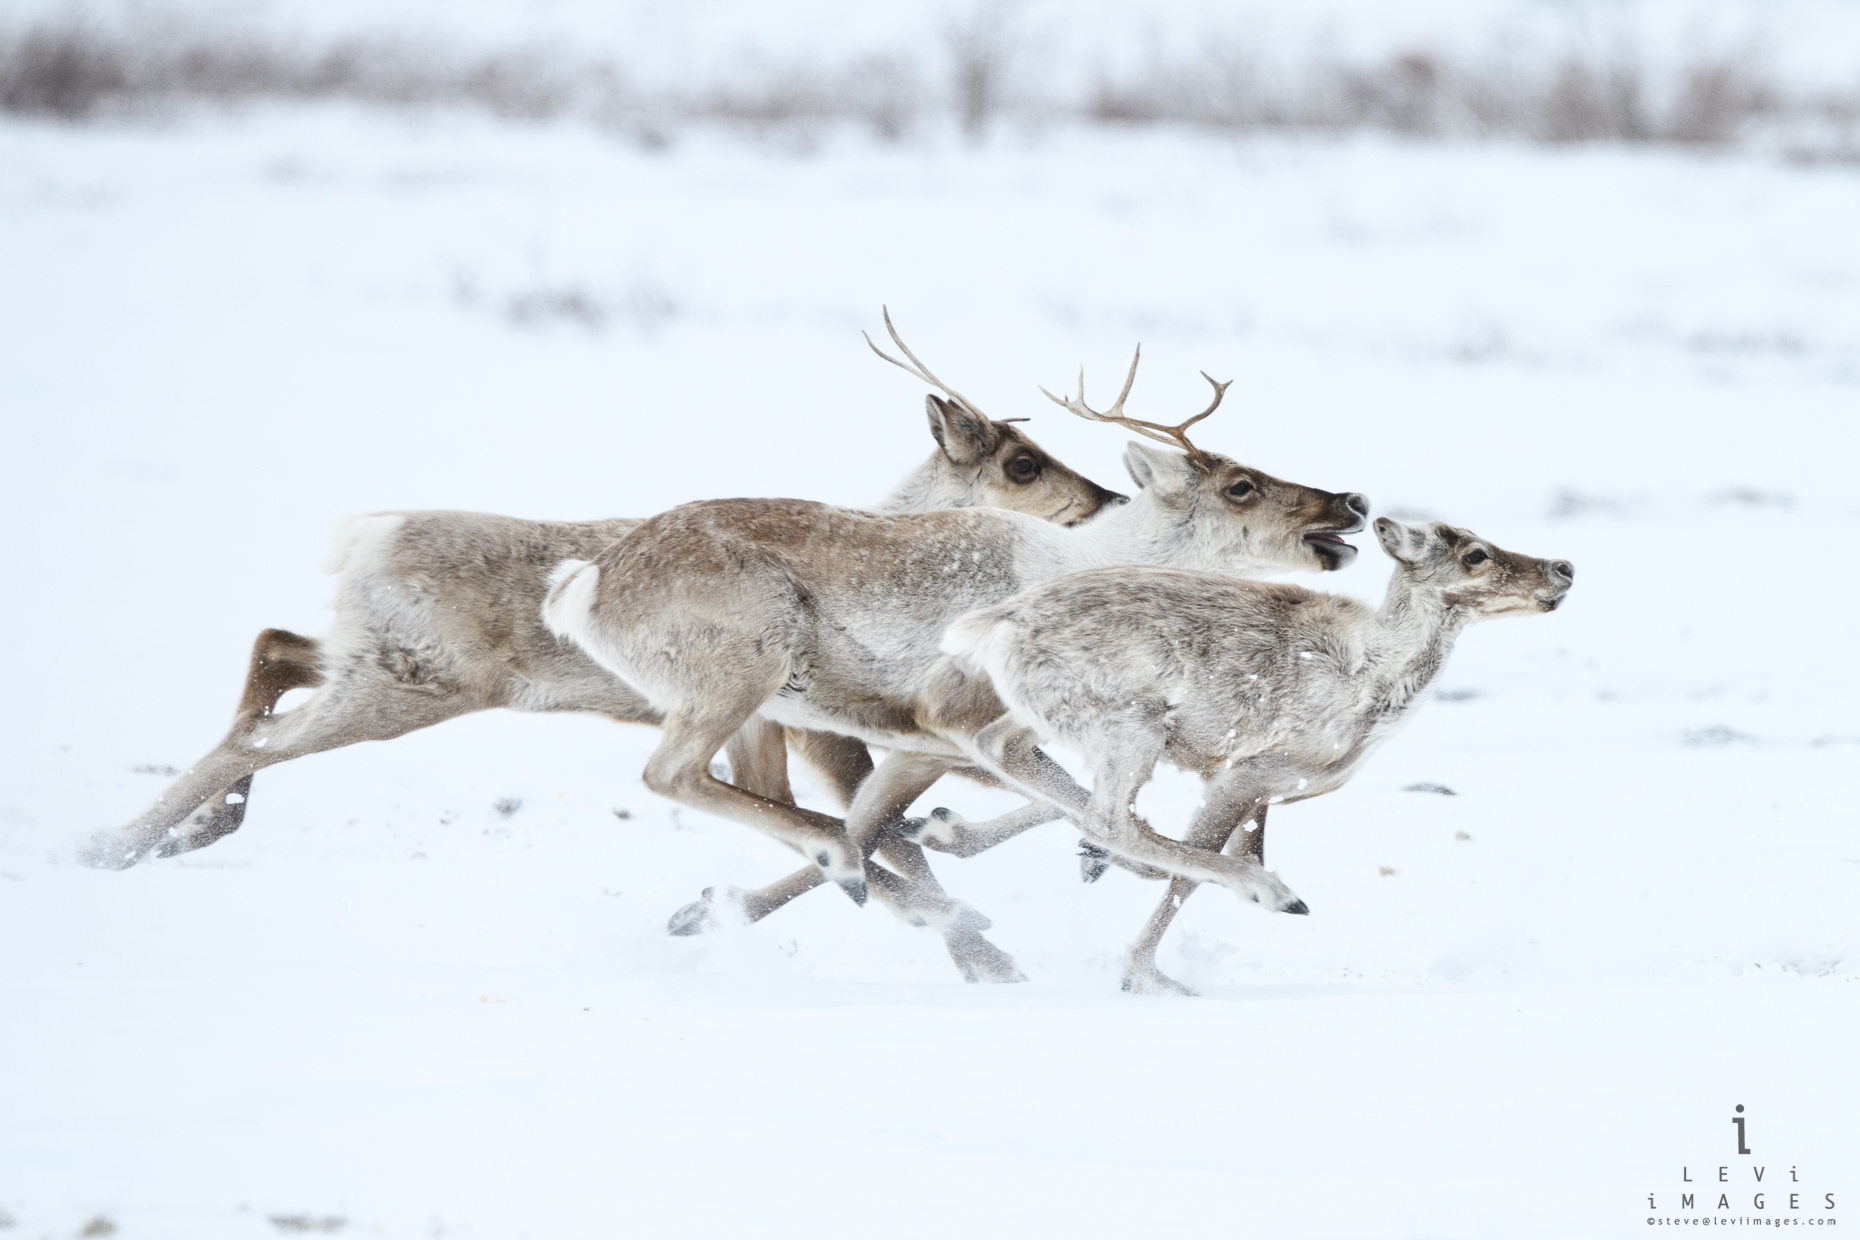 Caribou (Rangifer tarandus) in full gallop. Wapusk National Park, Manitoba, Canada